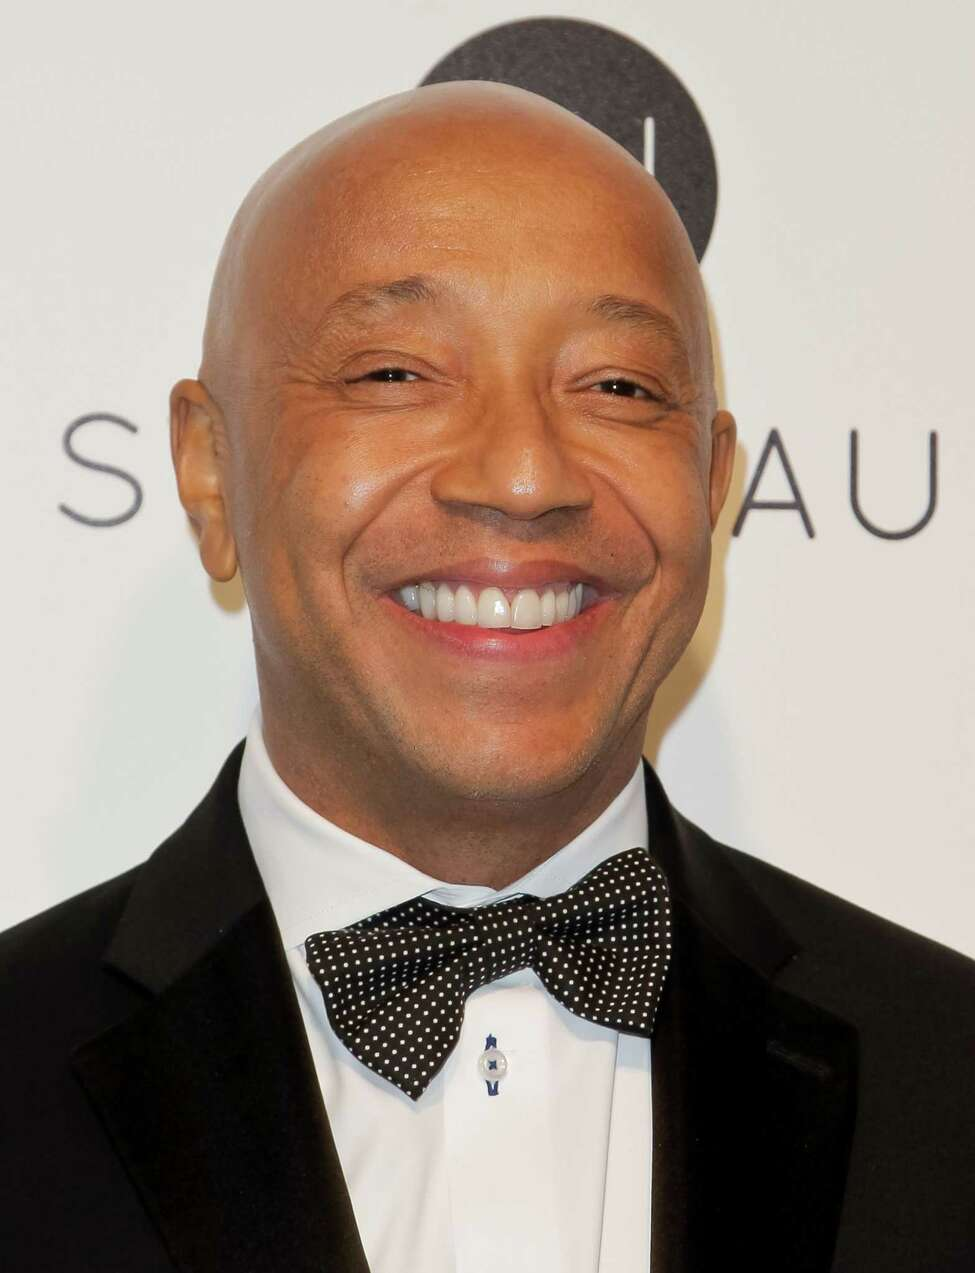 US entrepreneur and producer Russell Simmons poses upon his arrival for the 25th annual Elton John AIDS Foundation's Academy Awards Viewing Party on February 26, 2017 in West Hollywood, California. / AFP PHOTO / TIBRINA HOBSONTIBRINA HOBSON/AFP/Getty Images ORG XMIT: 1